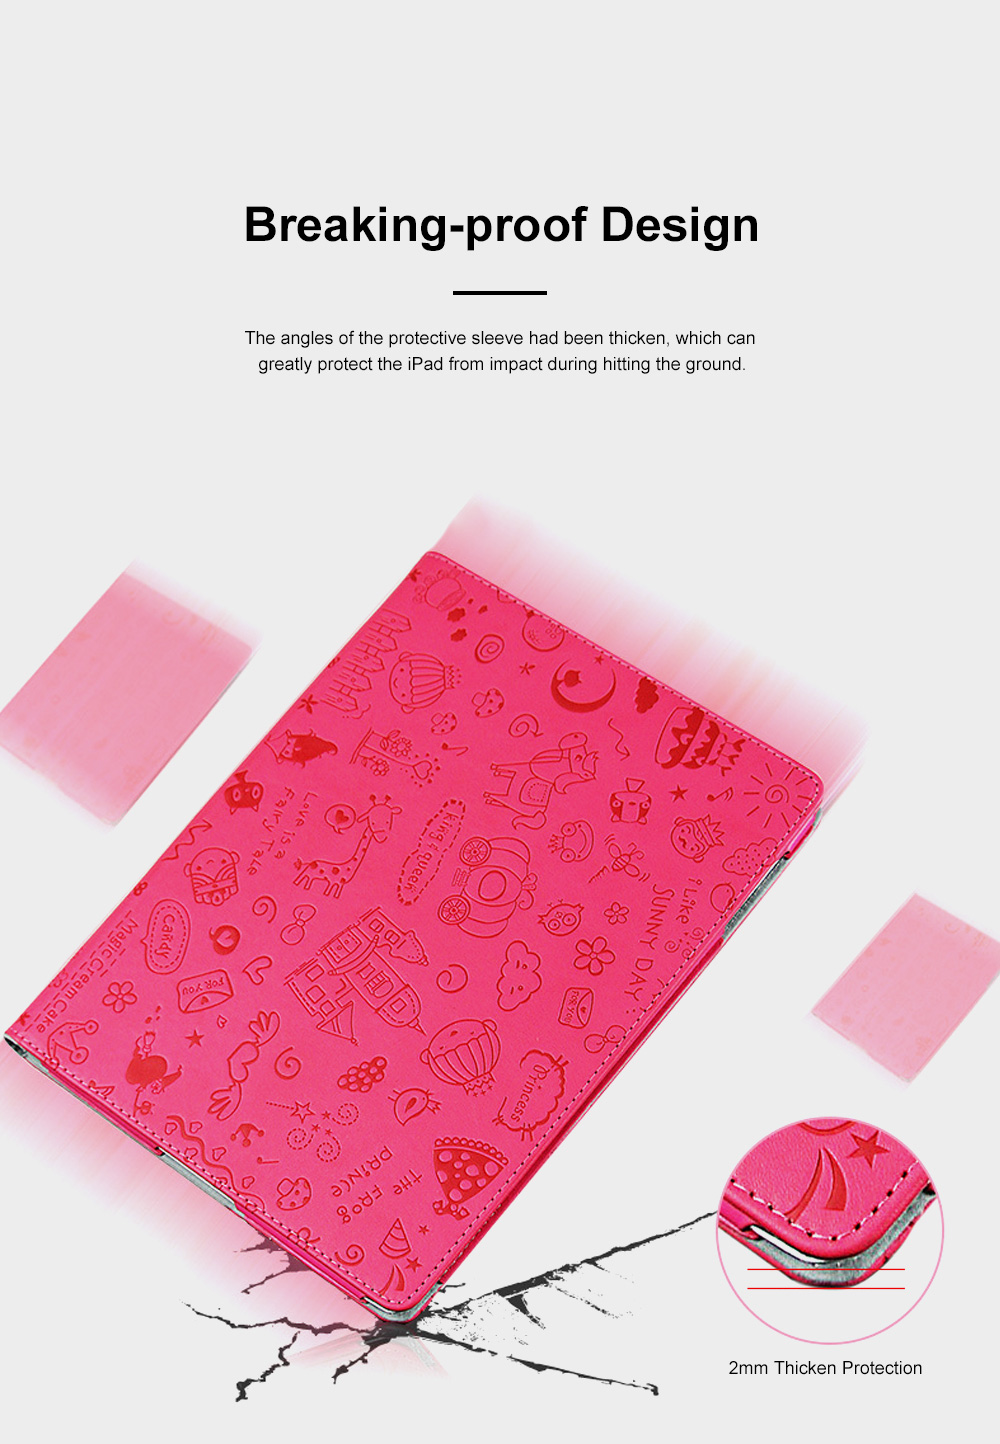 Creative Cute Stereo Cartoon Pattern iPad Protective Sleeve, Smooth PU Leather Tablet Computer Protection Case 5